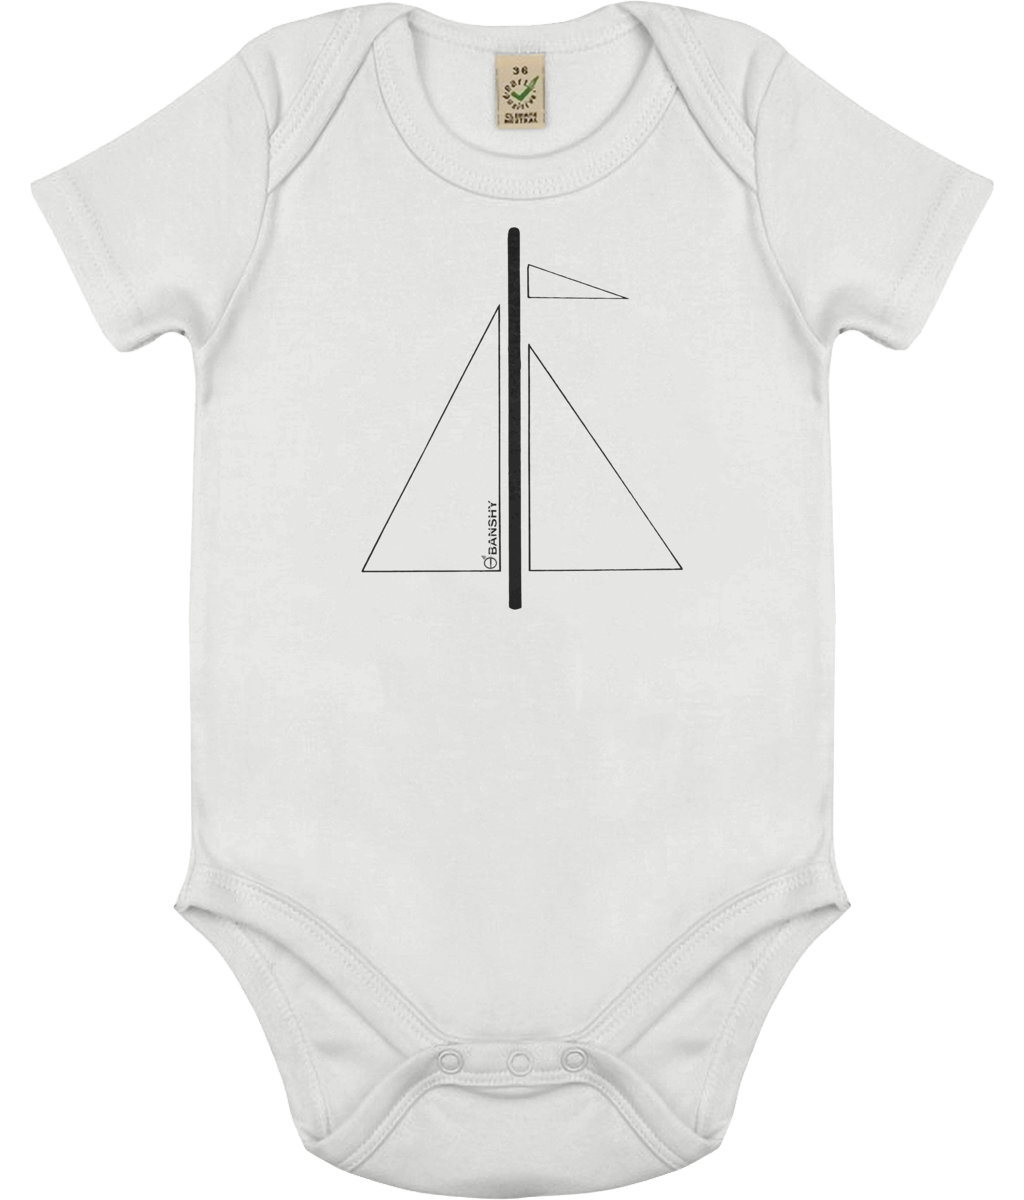 Babygrow Mât noir - Clothing - White / 0-3 months - 100% cotton - Banshy